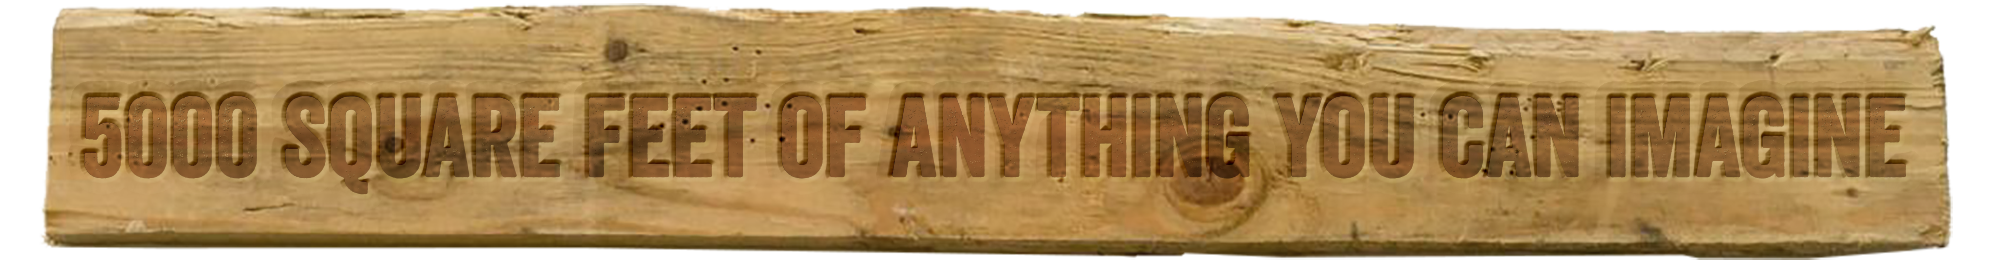 wood_sign.png